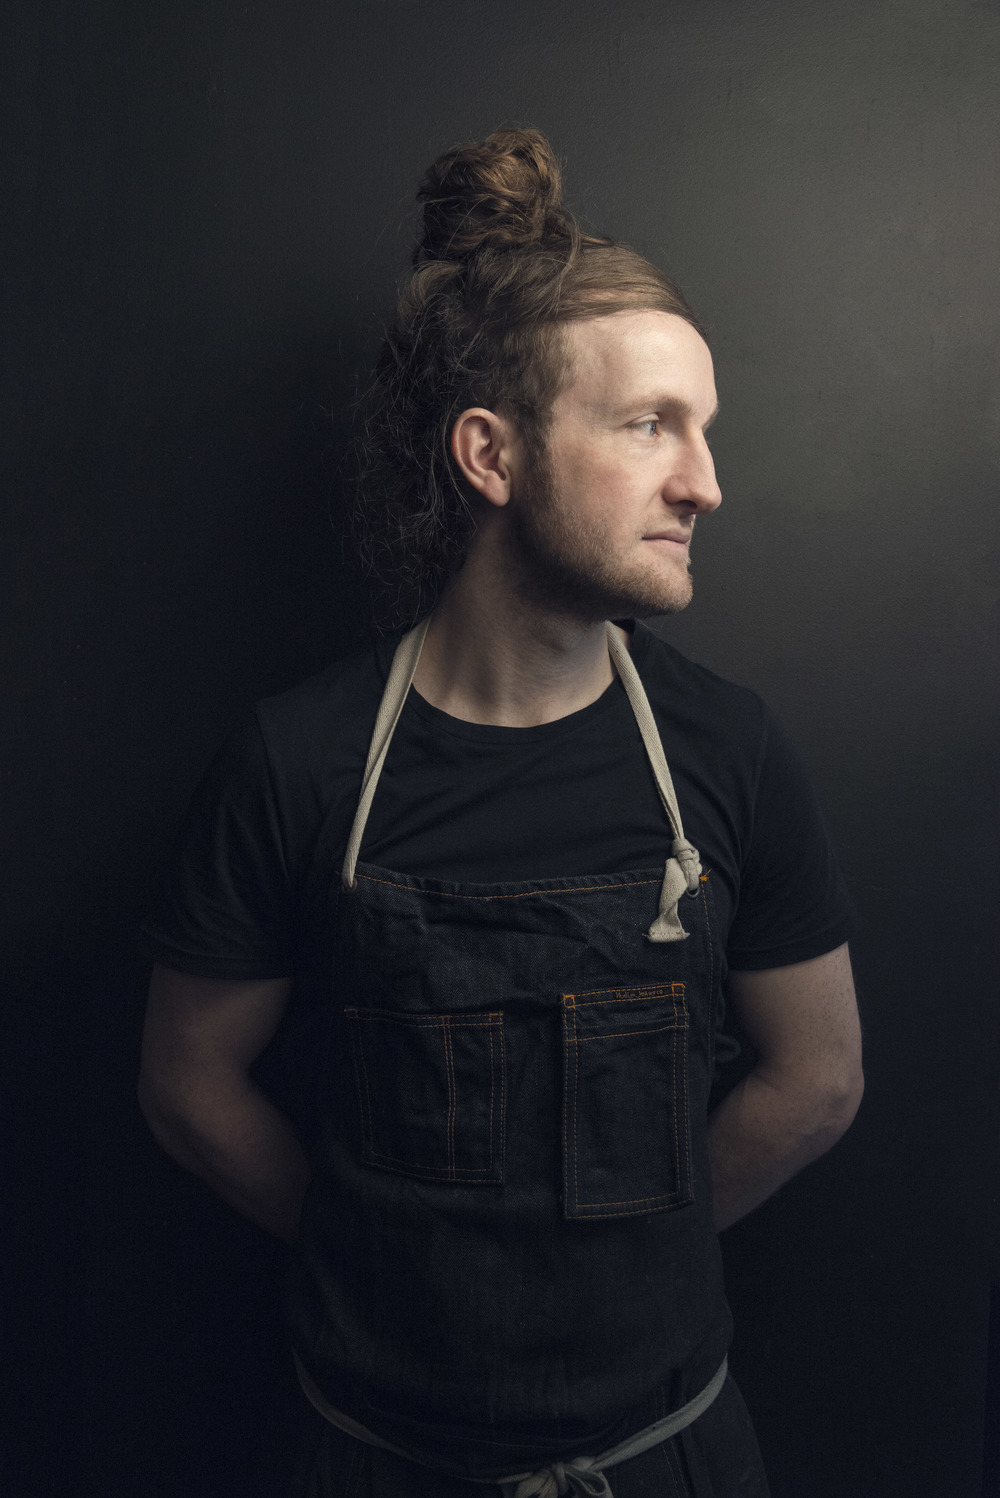 portrait_photographer_brighton_chef